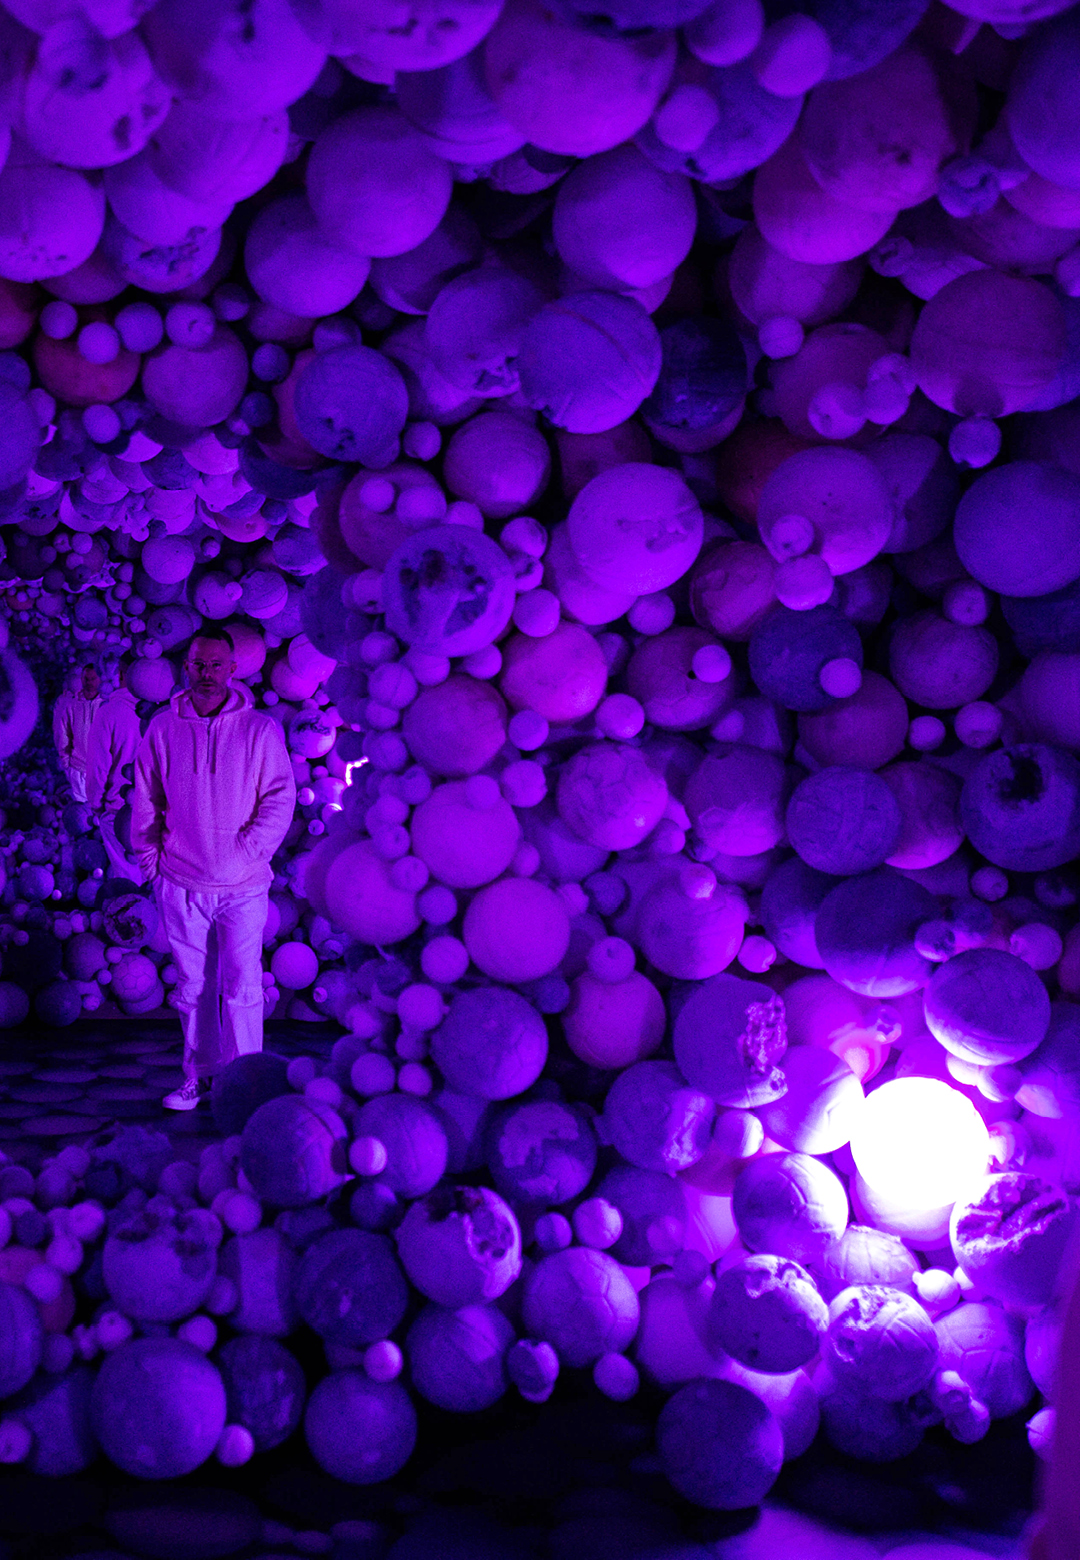 Daniel Arsham, Amethyst Ball Cavern, Connecting Time, MOCO Museum | Connecting Time | Daniel Arsham | STIR